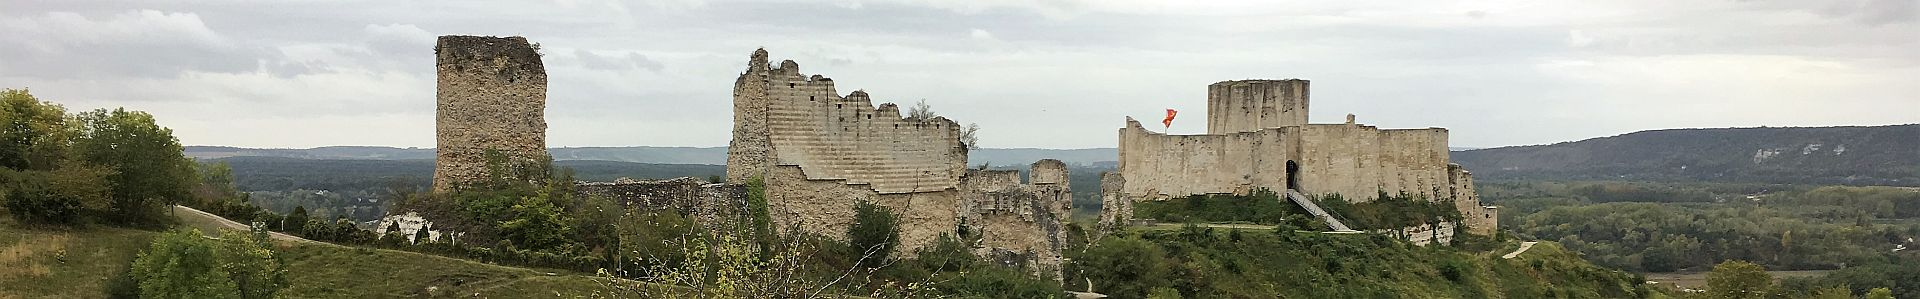 Ruine Fougeres